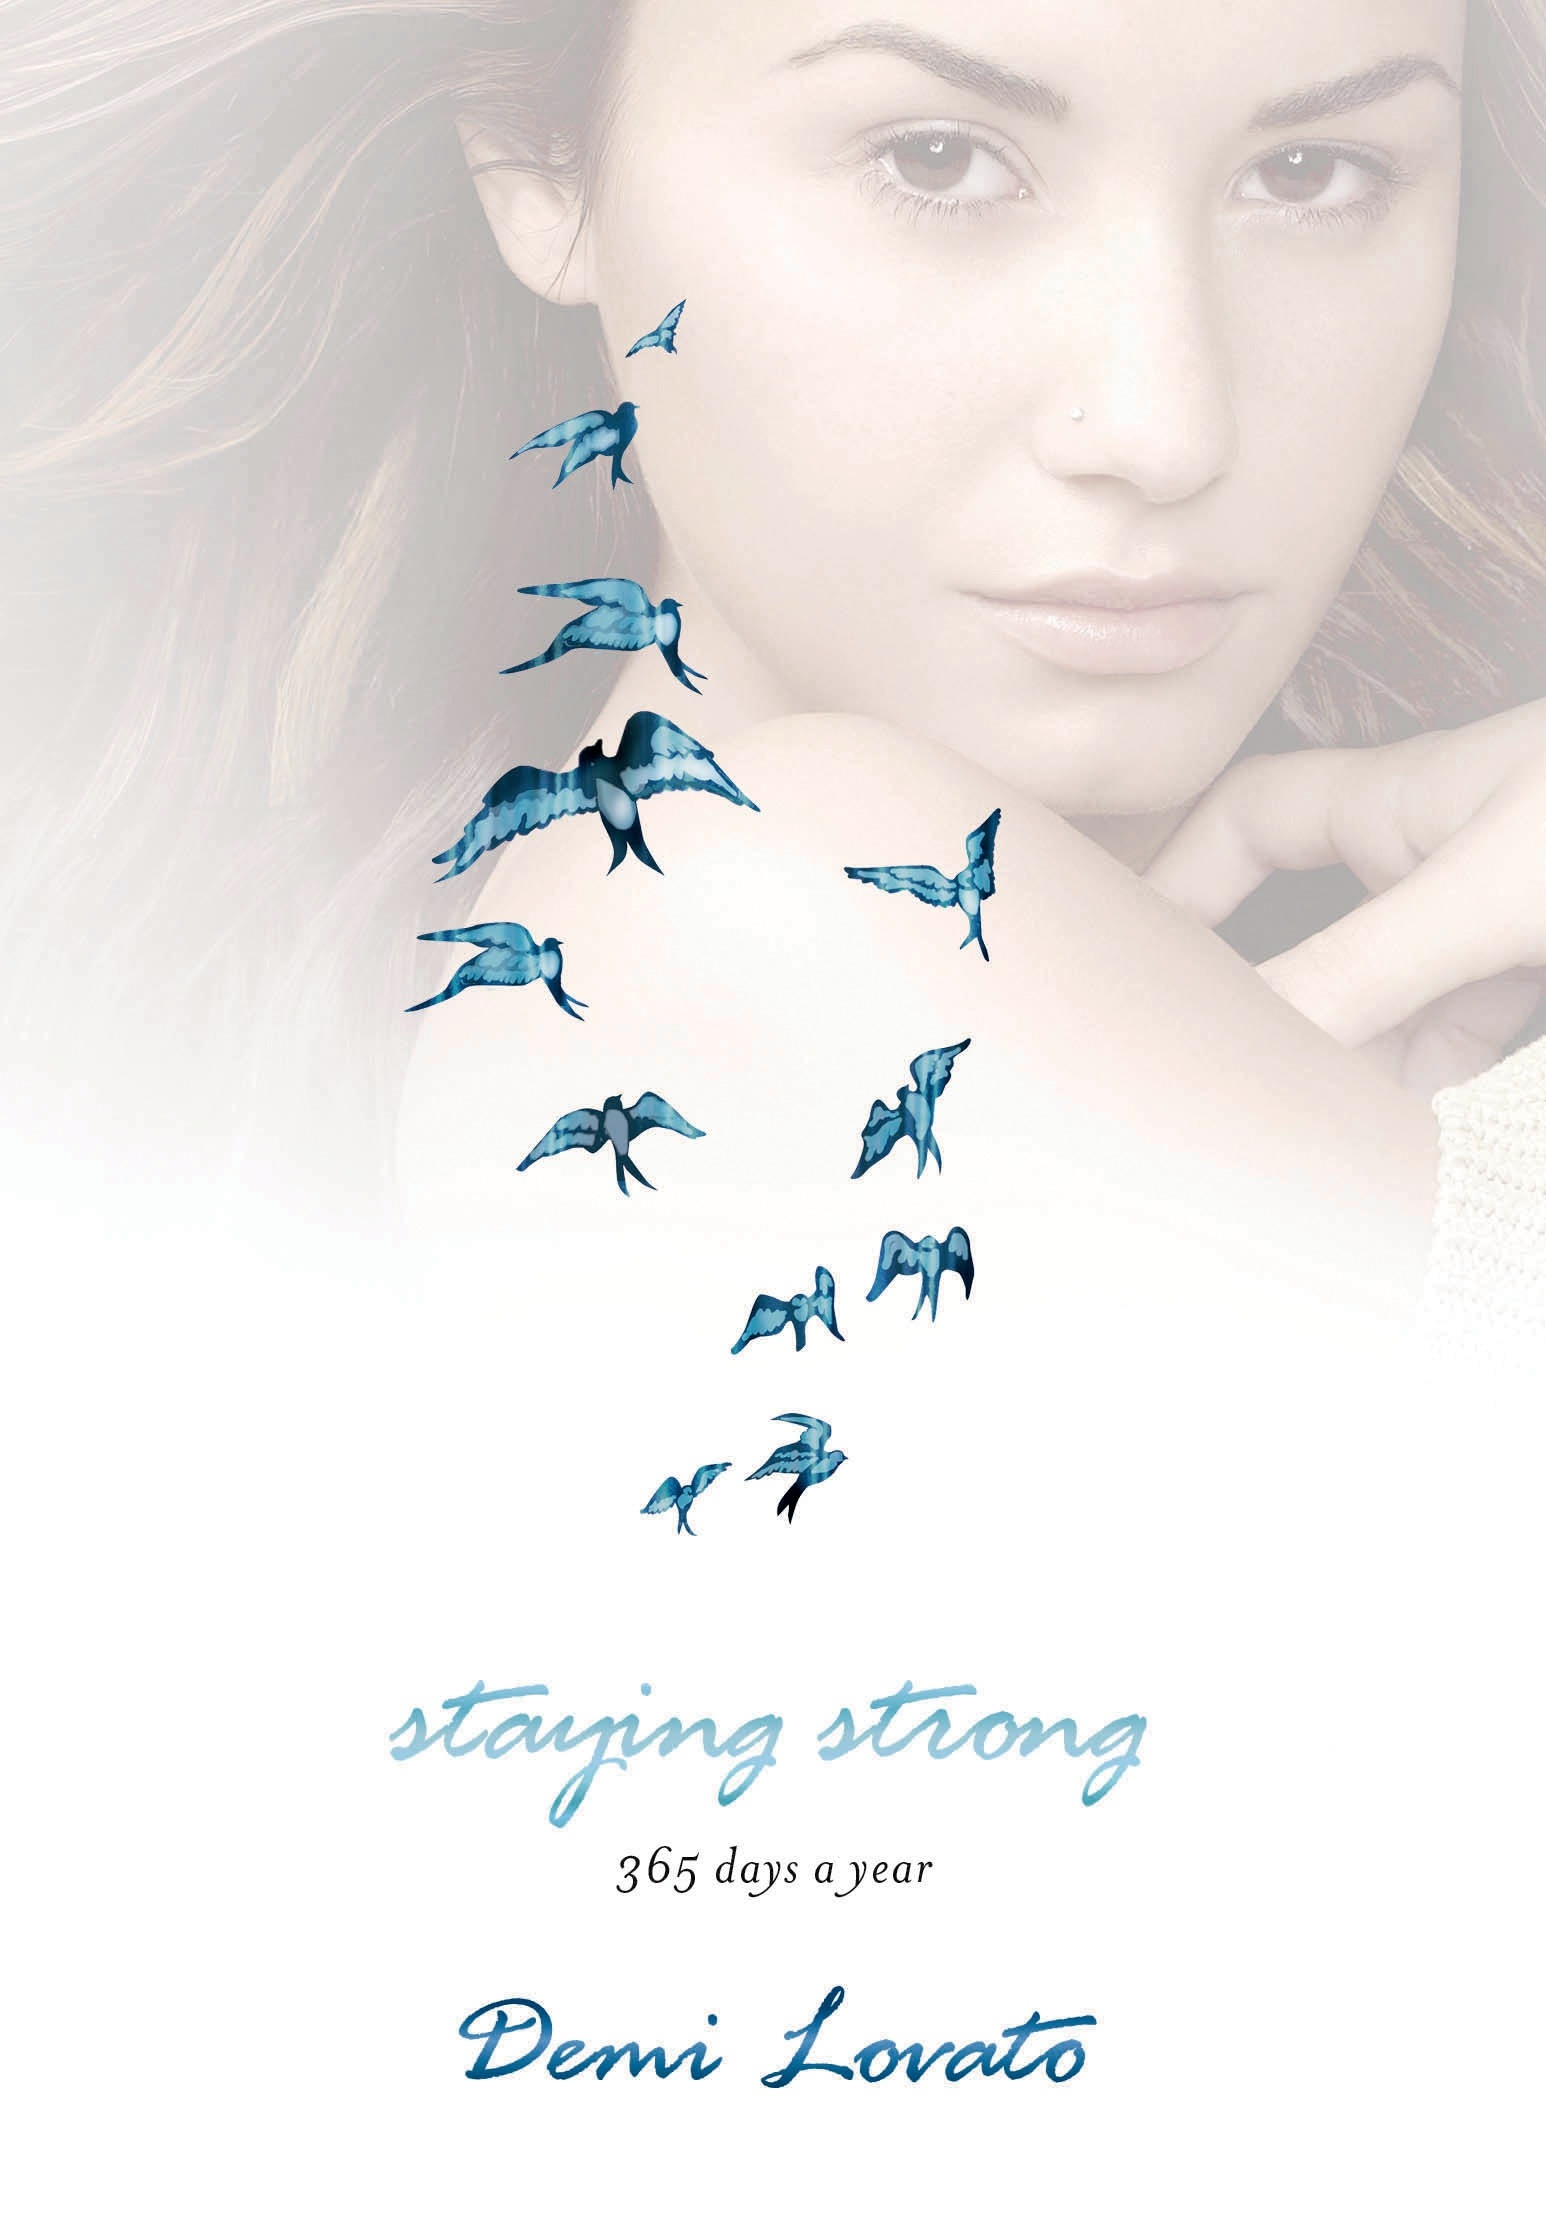 Staying strong 365 days a year cover image